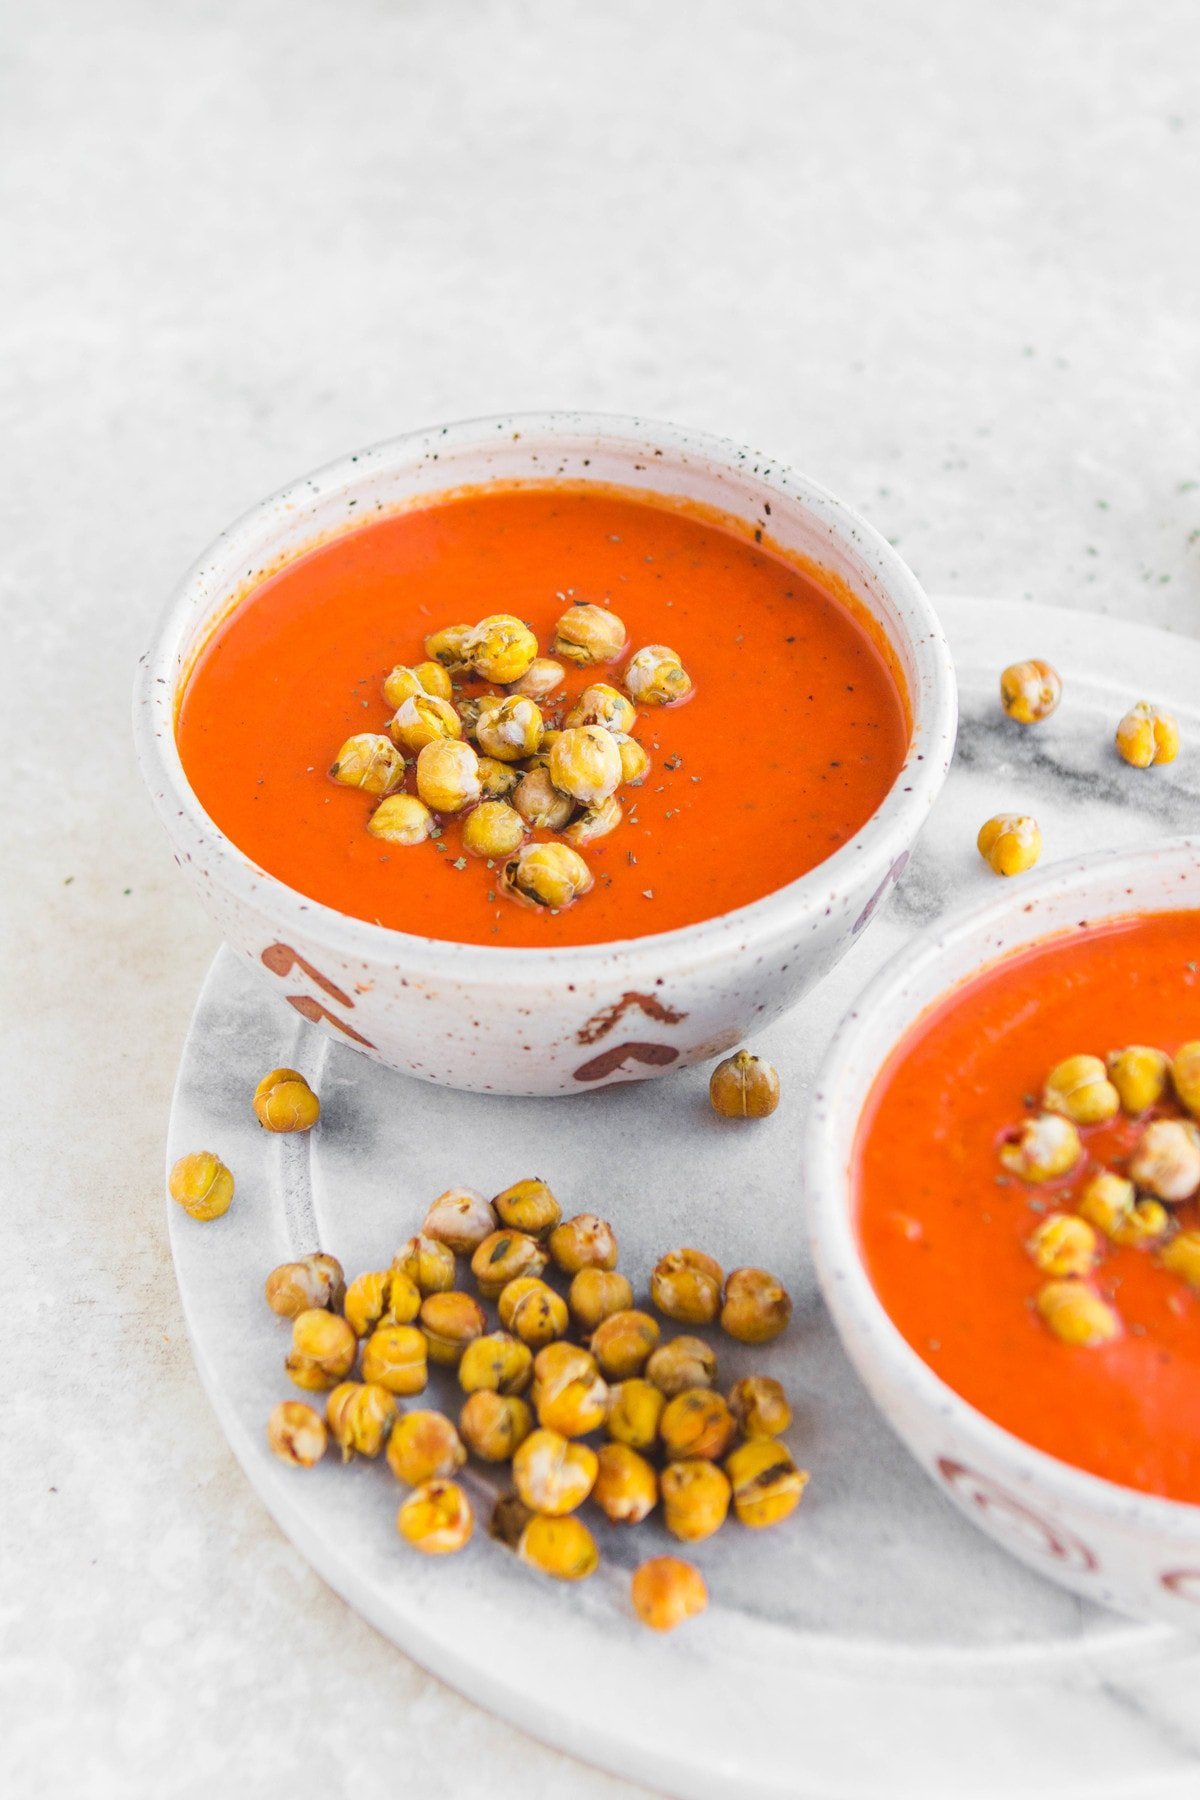 This 10 Ingredient Vegan Tomato & Red Pepper Soup is an easy weeknight dinner and perfect for meal prep! #vegan #mealprep #plantbased #tomatosoup #glutenfree #oilfree